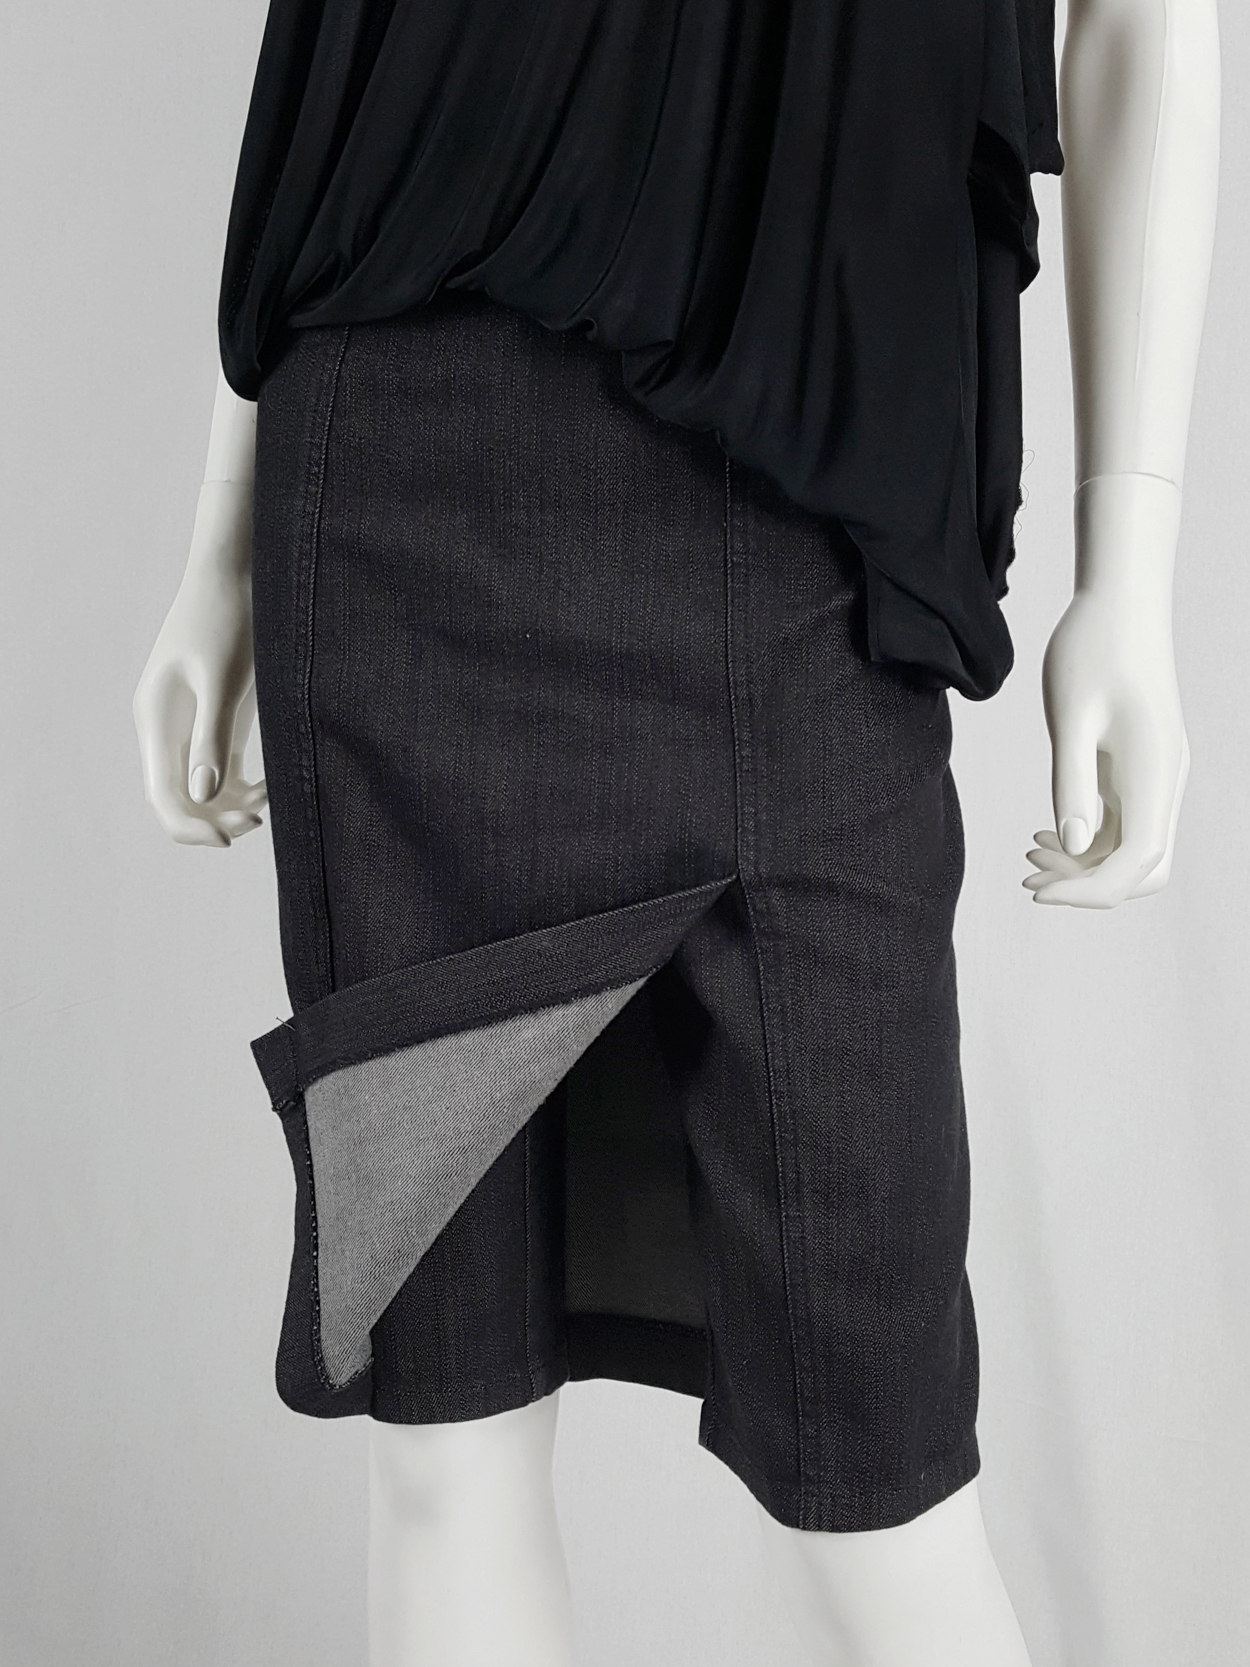 vaniitas archival Maison Martin Margiela denim skirted shorts with front flap runway fall 2007 154942